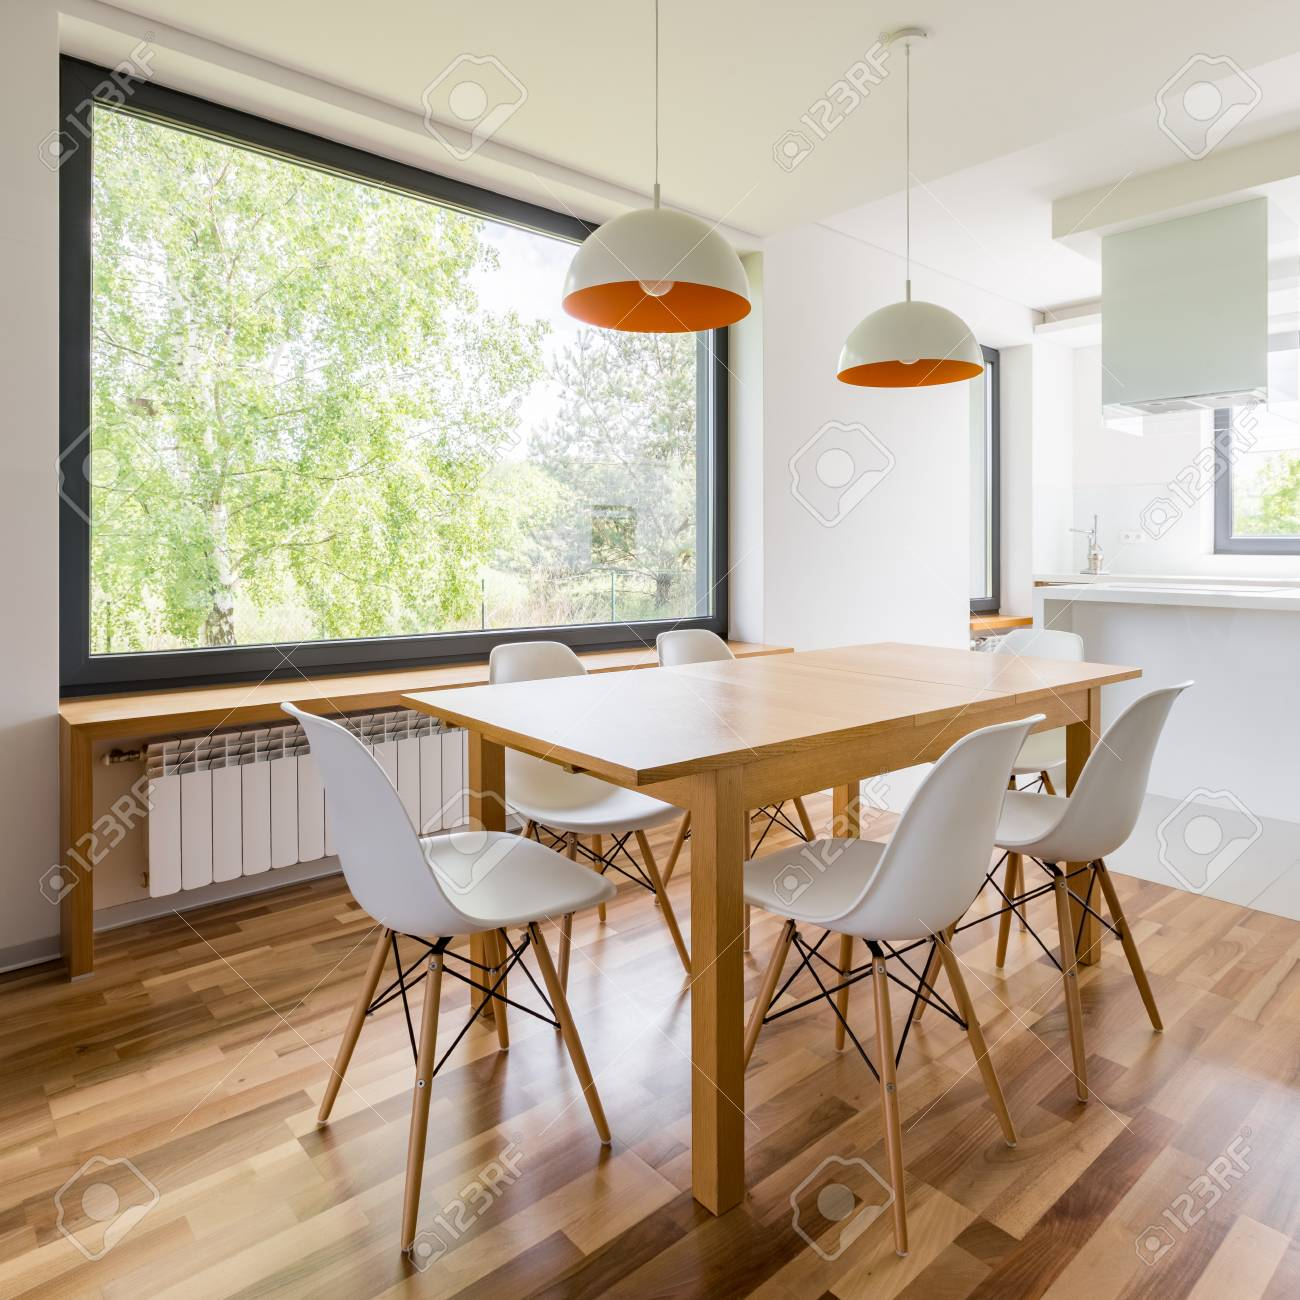 Square Frame Of Interior With Wooden Dining Table White Chairs Stock Photo Picture And Royalty Free Image Image 98909552